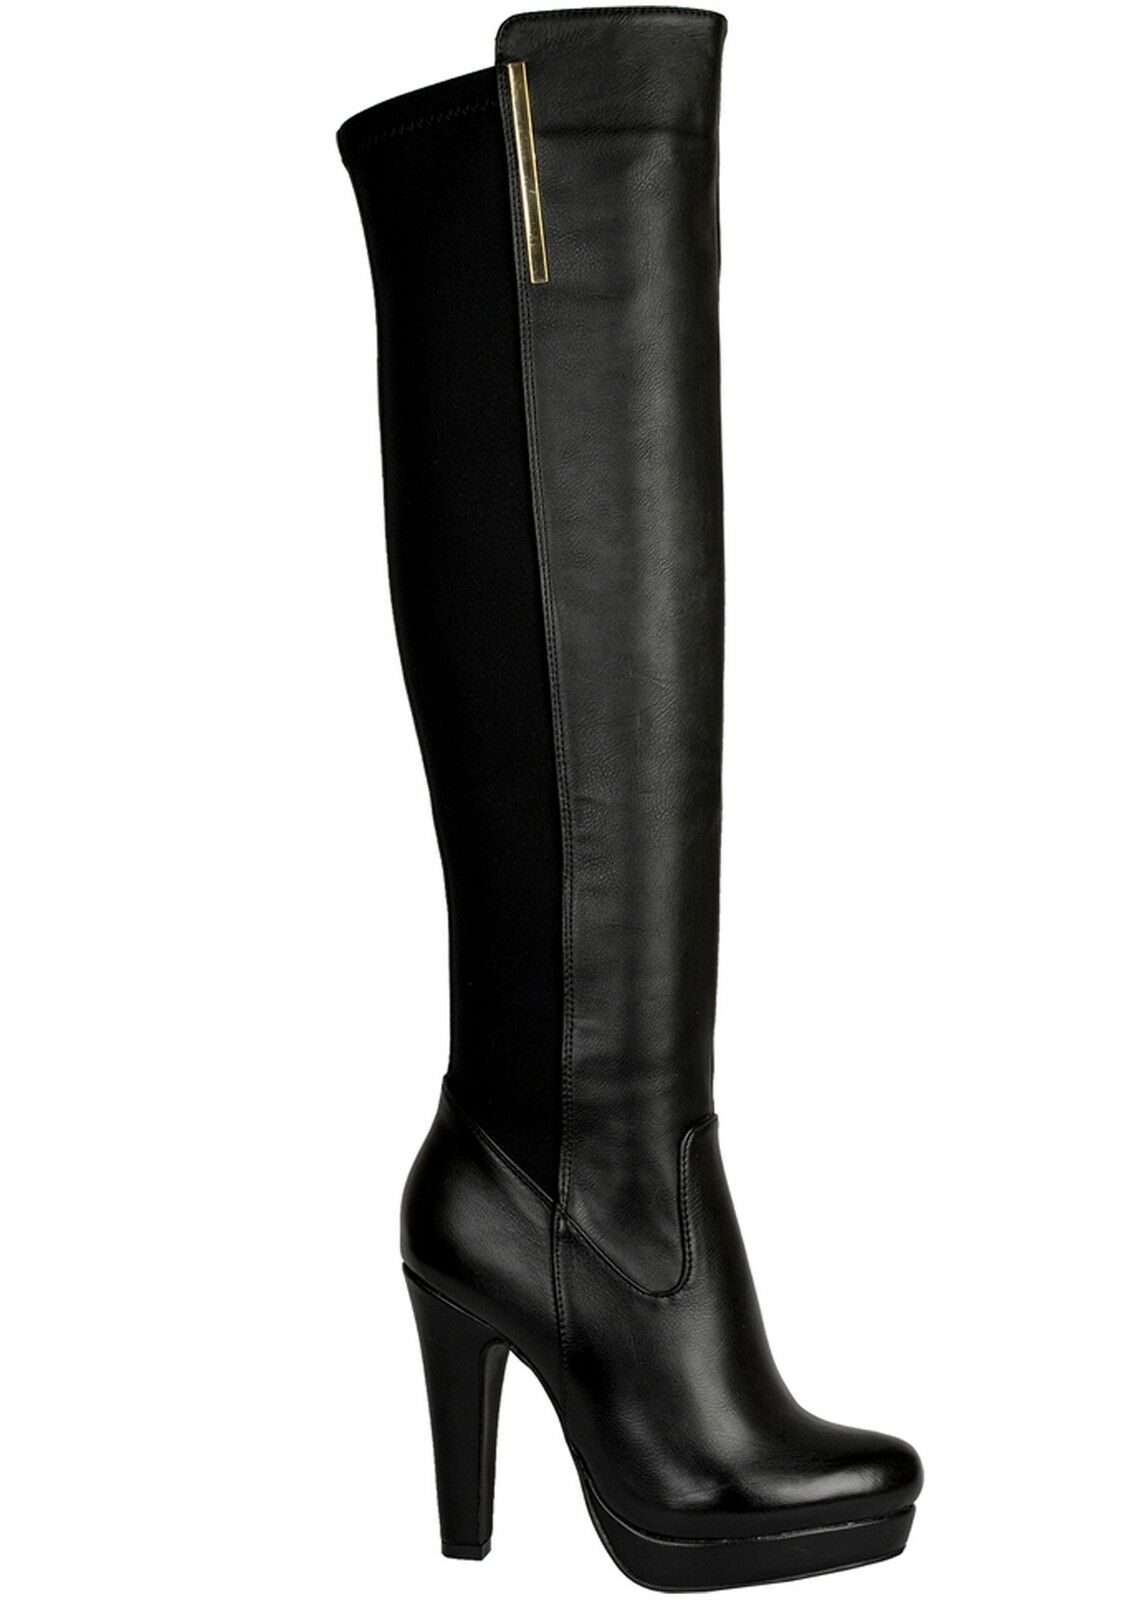 Valentin High Black Strech Fashion Boots with Gold Detail